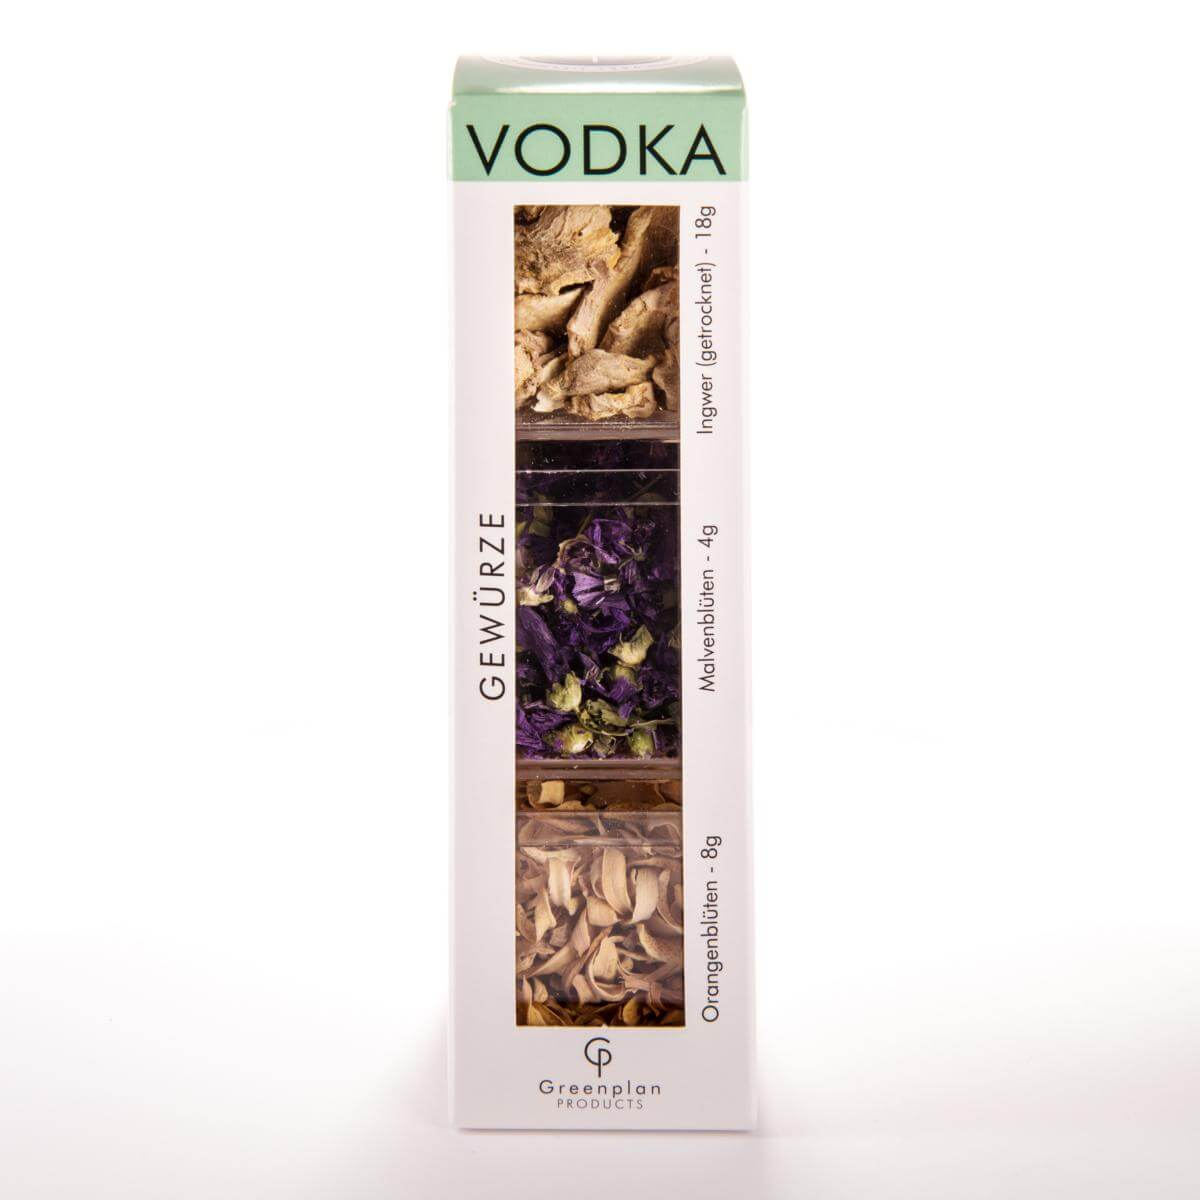 Special Touch Vodka Botanicals 3er Set Geschenkset Wodka Tonic Botanical Pack 3 Wodka